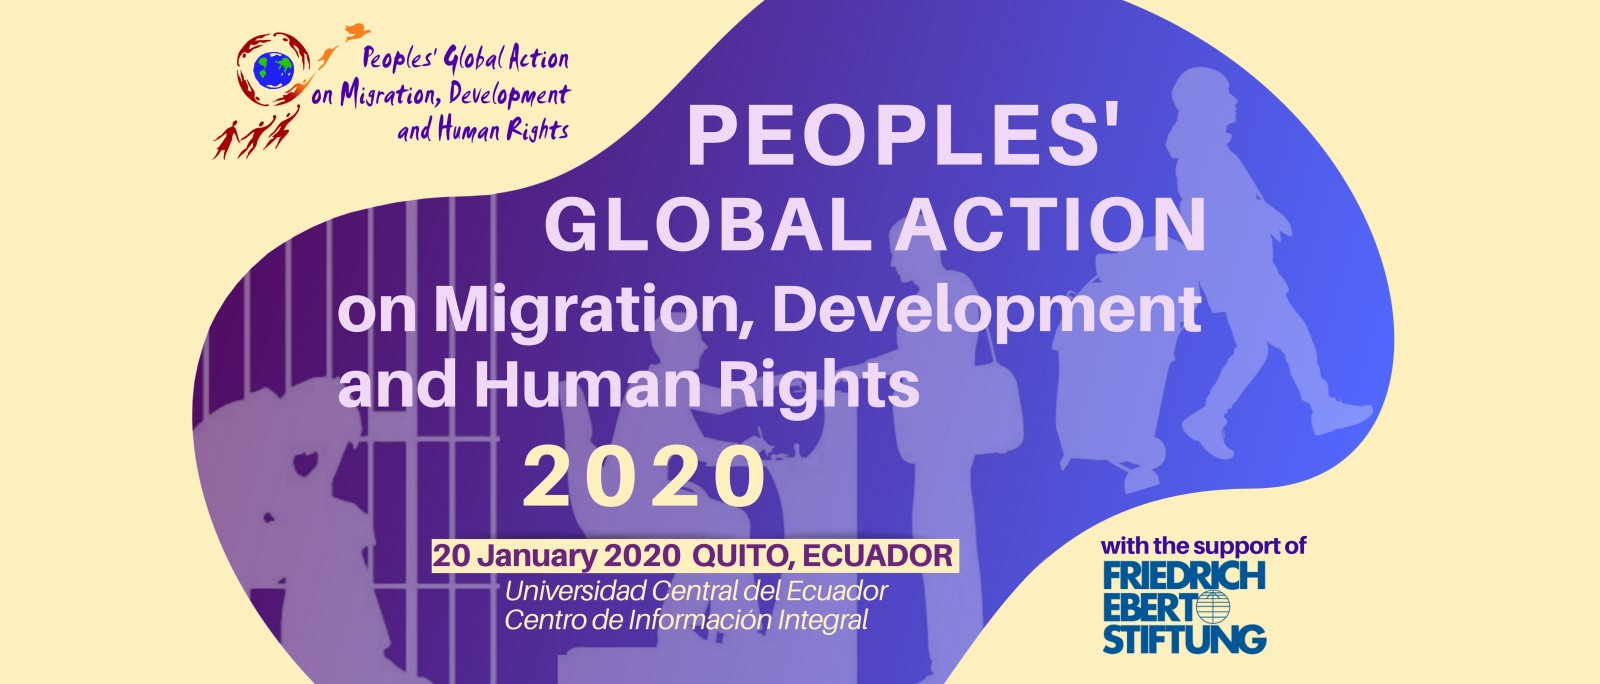 Peoples Global Action Quito, Ecuador 2020